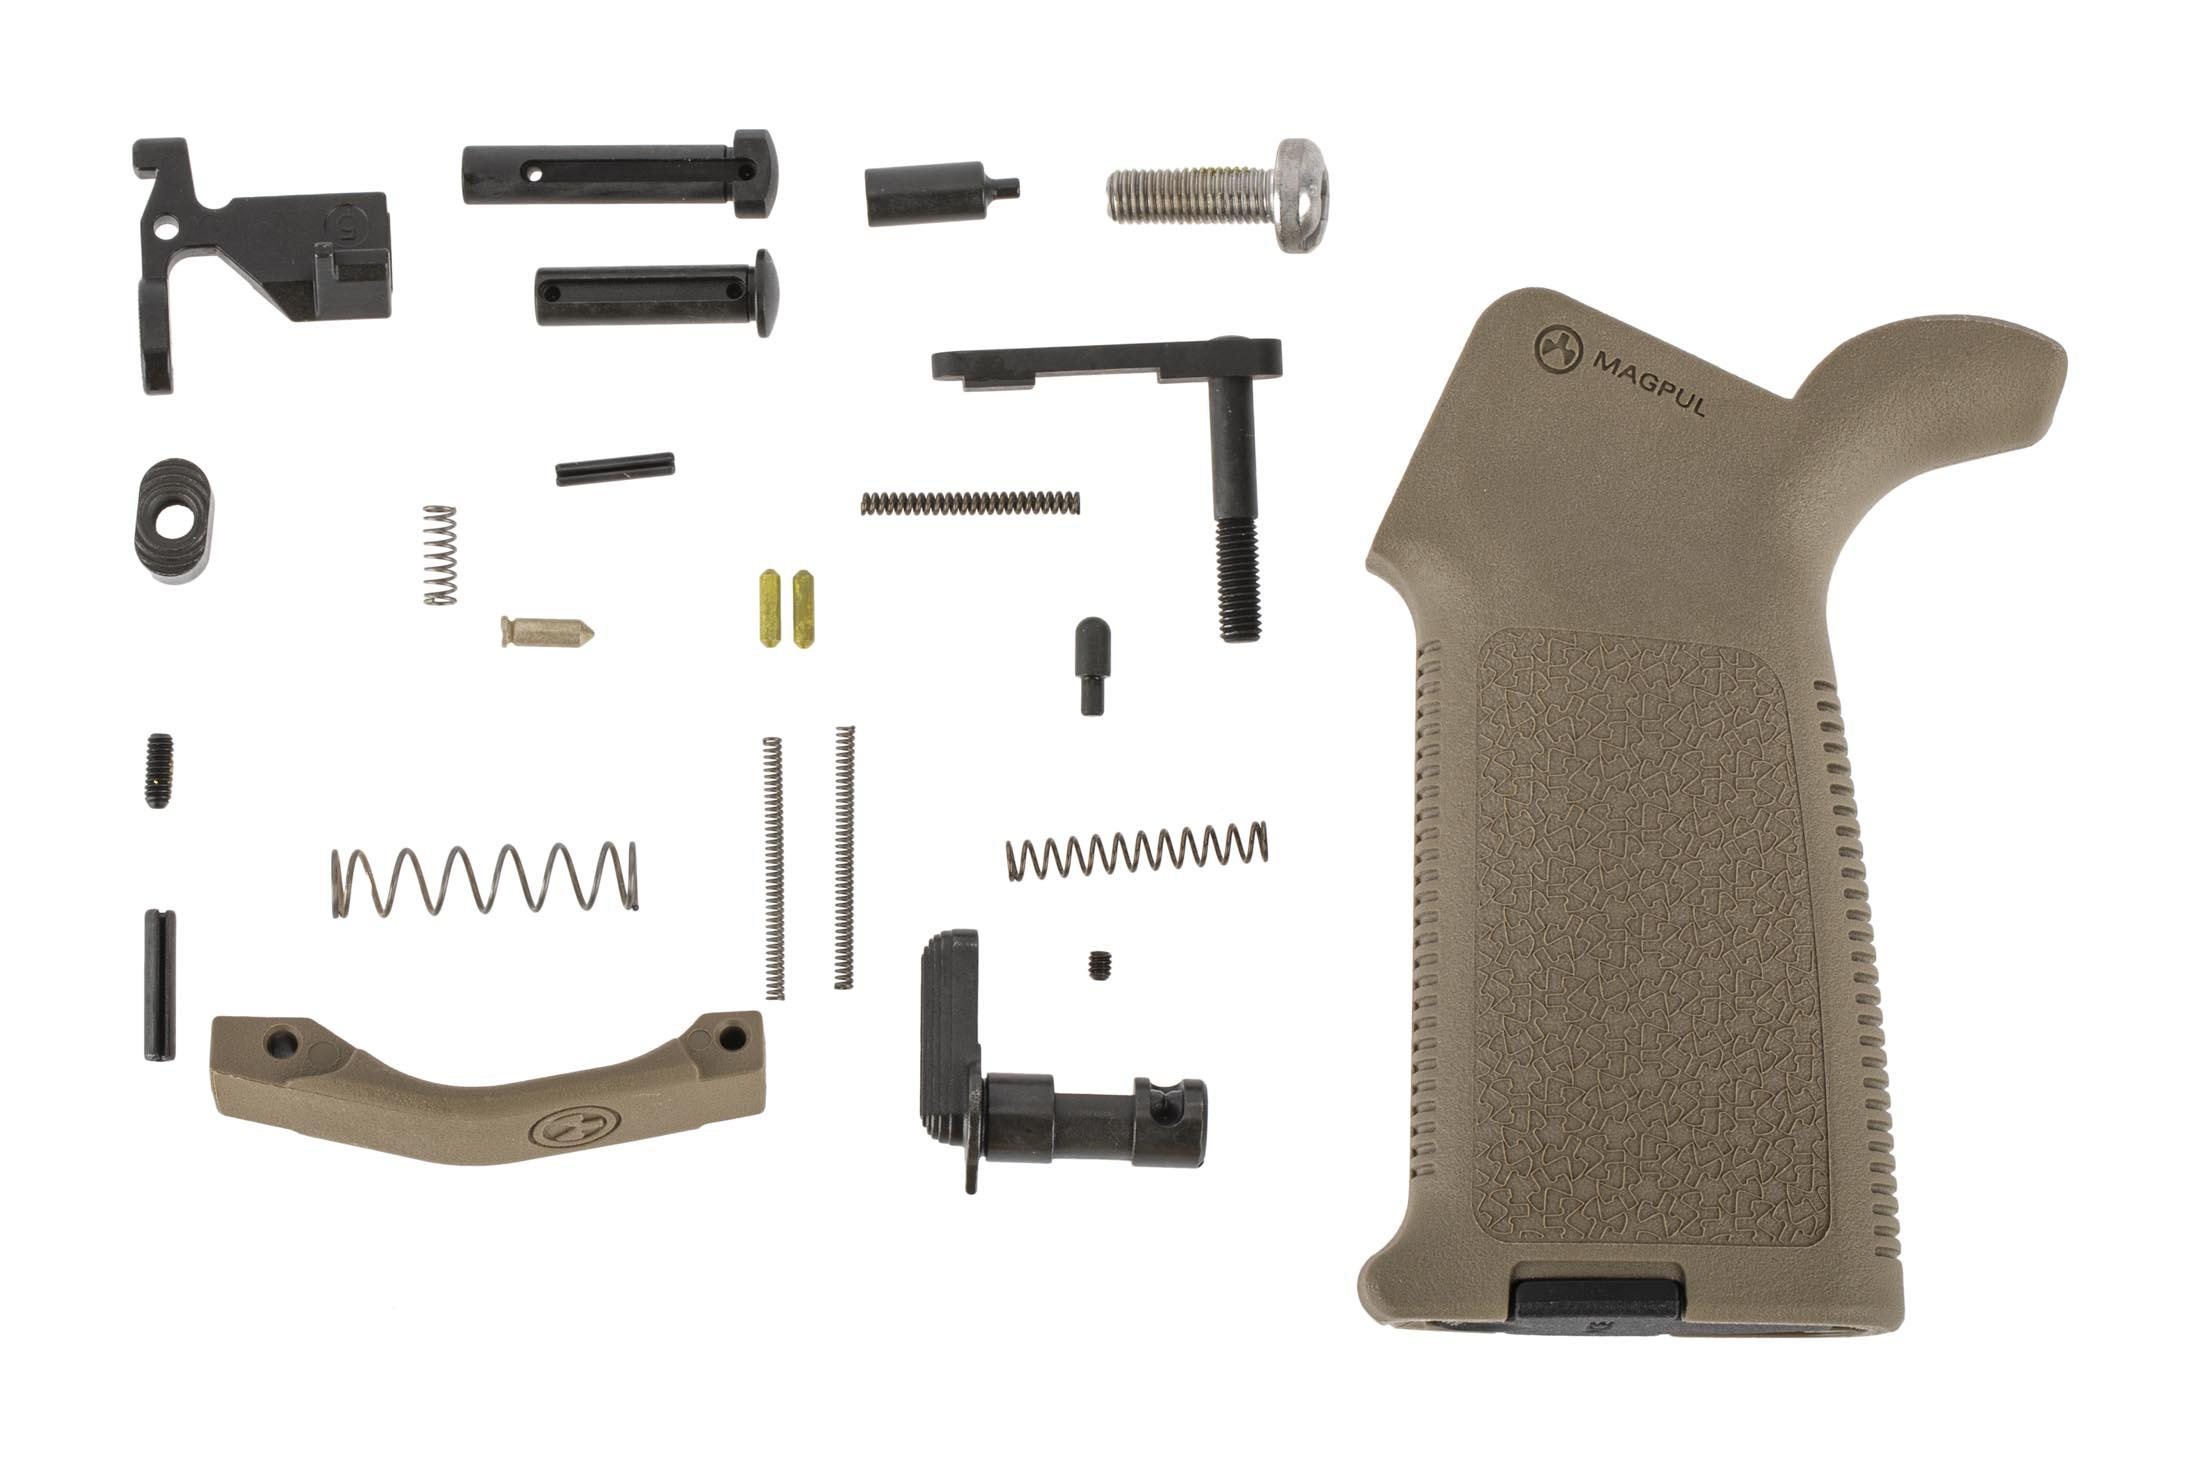 Aero Precision AR-15 MOE lower parts kit without trigger group or trigger guard featuers a Magpul MOE pistol grip in FDE.